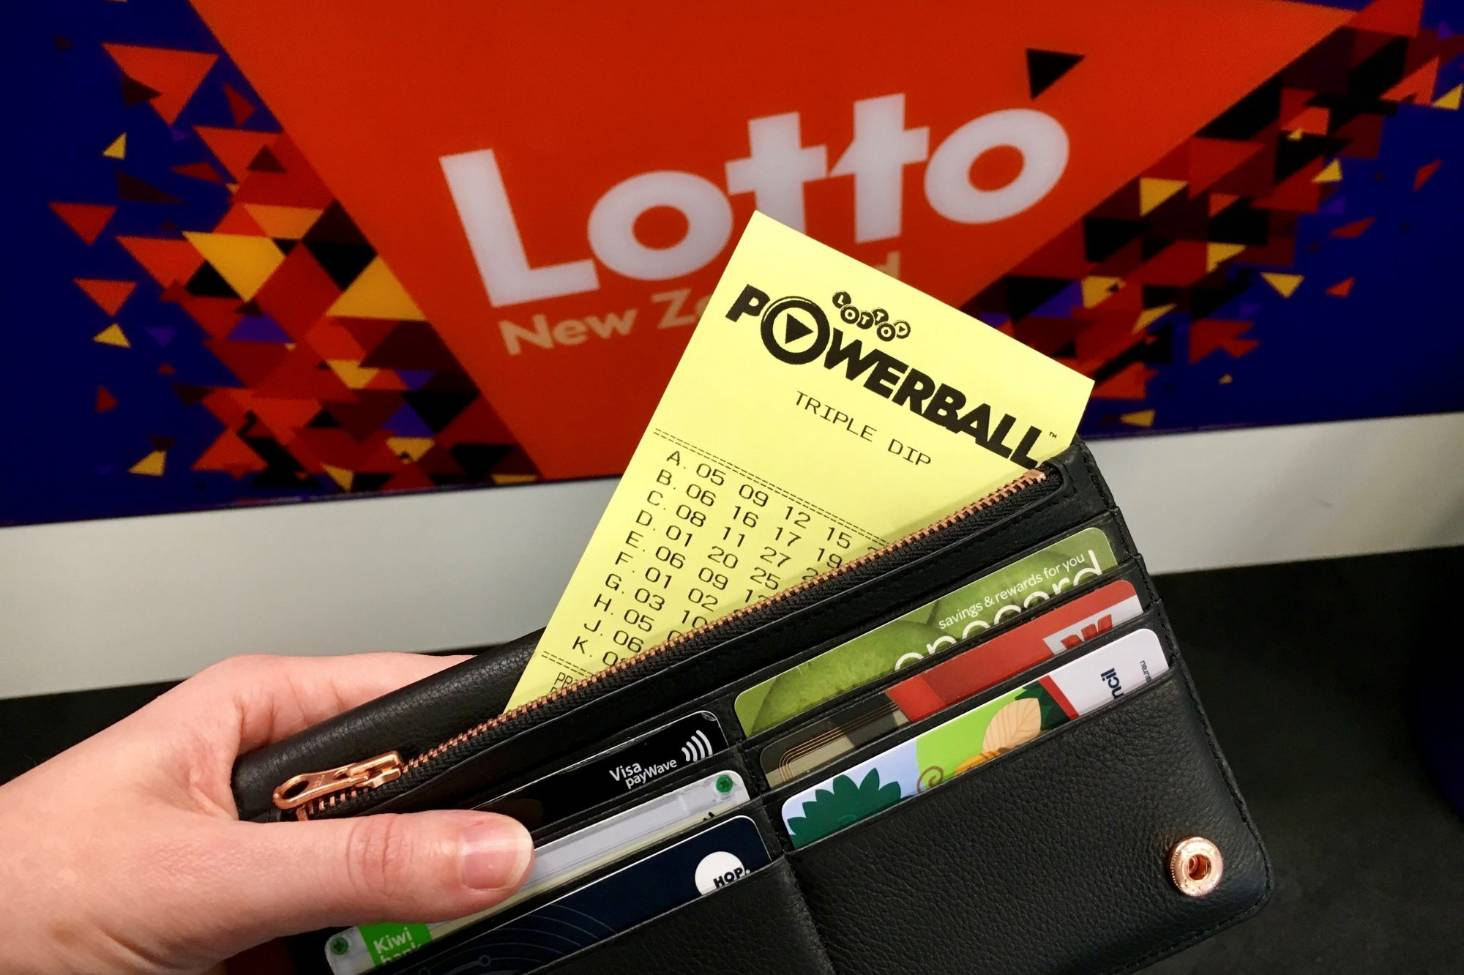 $50m Lotto Powerball jackpot: Lotto says sorry for ticket checking delays | Stuff.co.nz